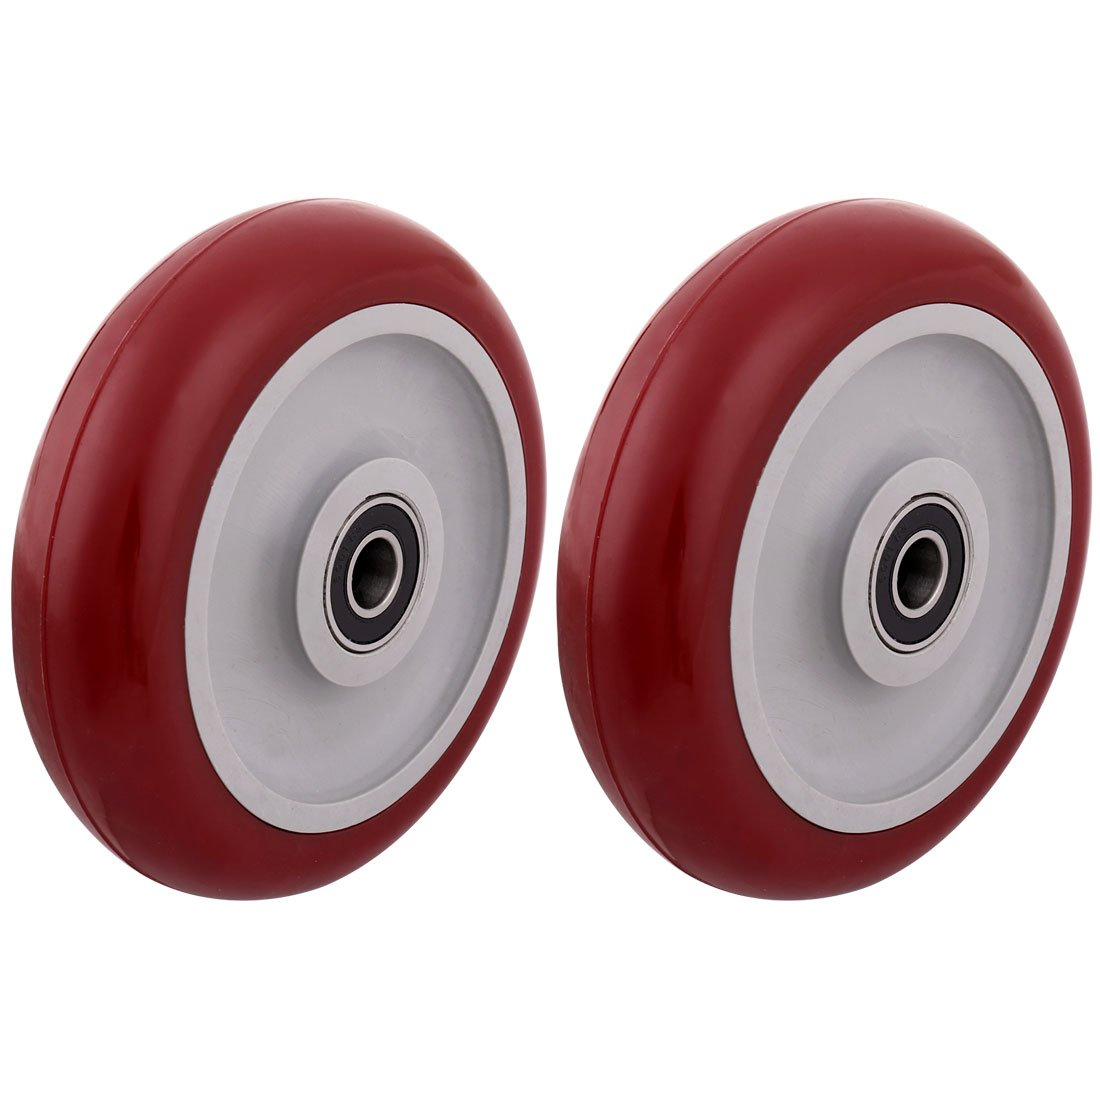 uxcell 5'' Polyurethane on Hard plastic Wheel with Bearing, Shim, and Bushing, Replacement Part For Carts, Furniture, Dolly, Workbench, Trolley, Wheel Only, Red Set of 2